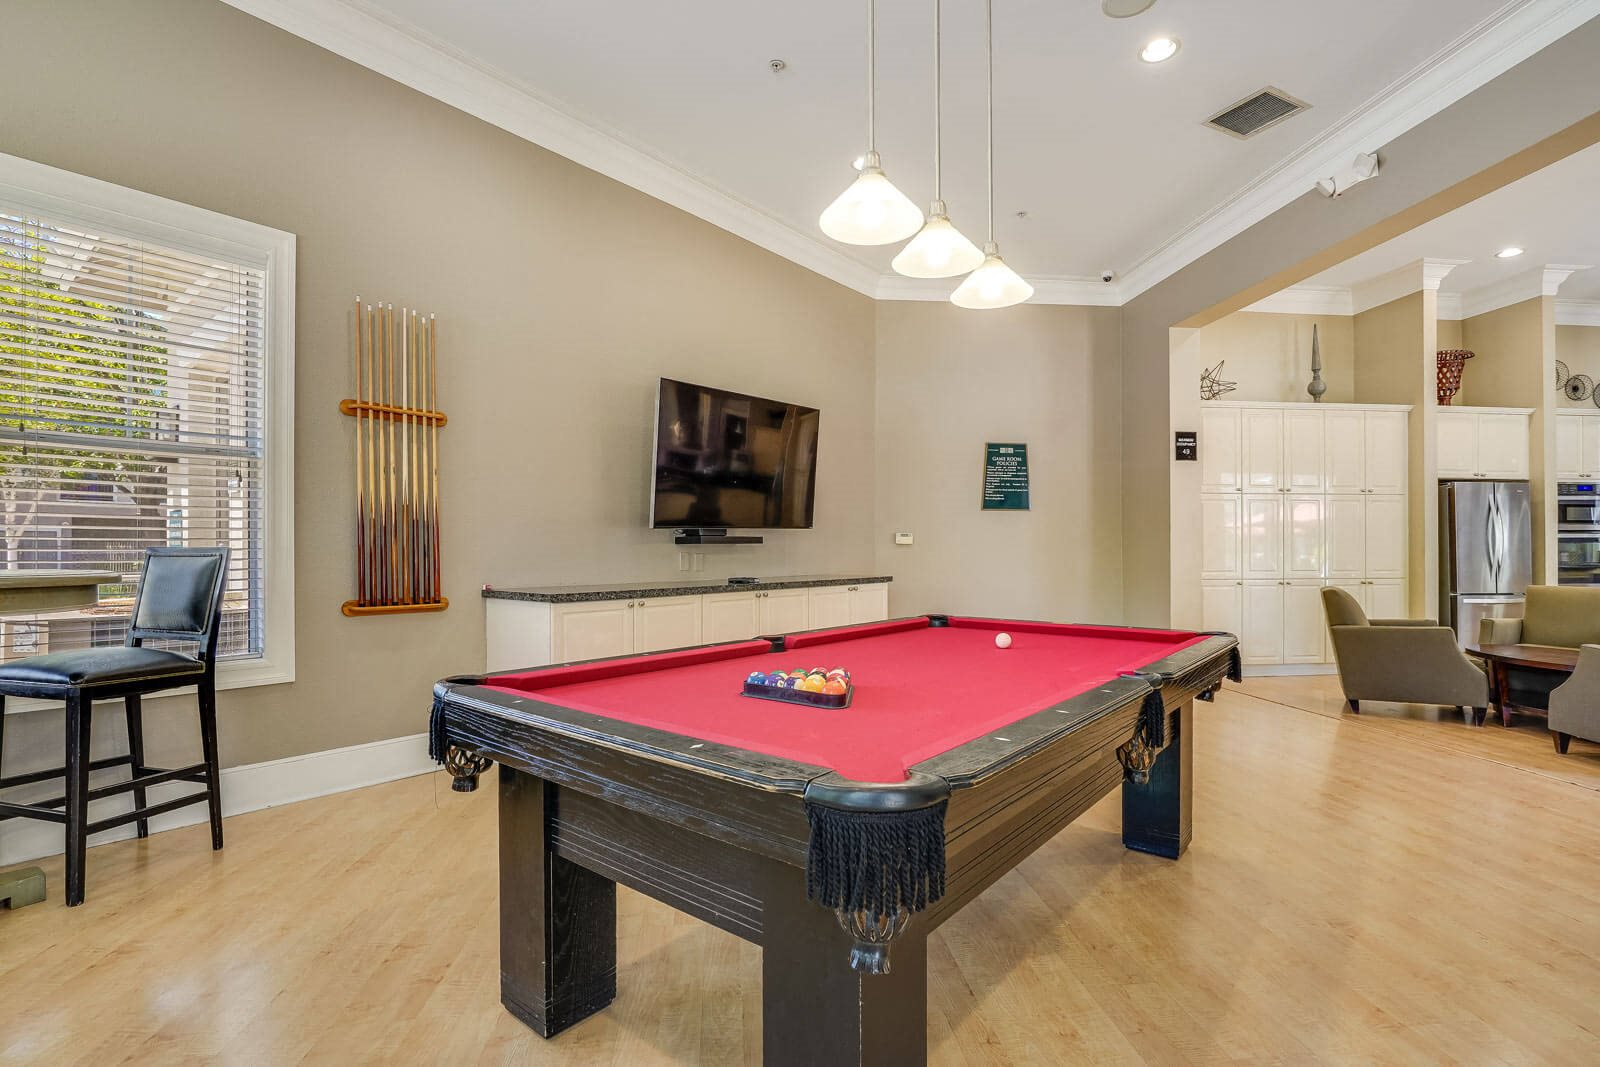 Billiards Table in Clubhouse at The Estates at Park Place, Fremont, California